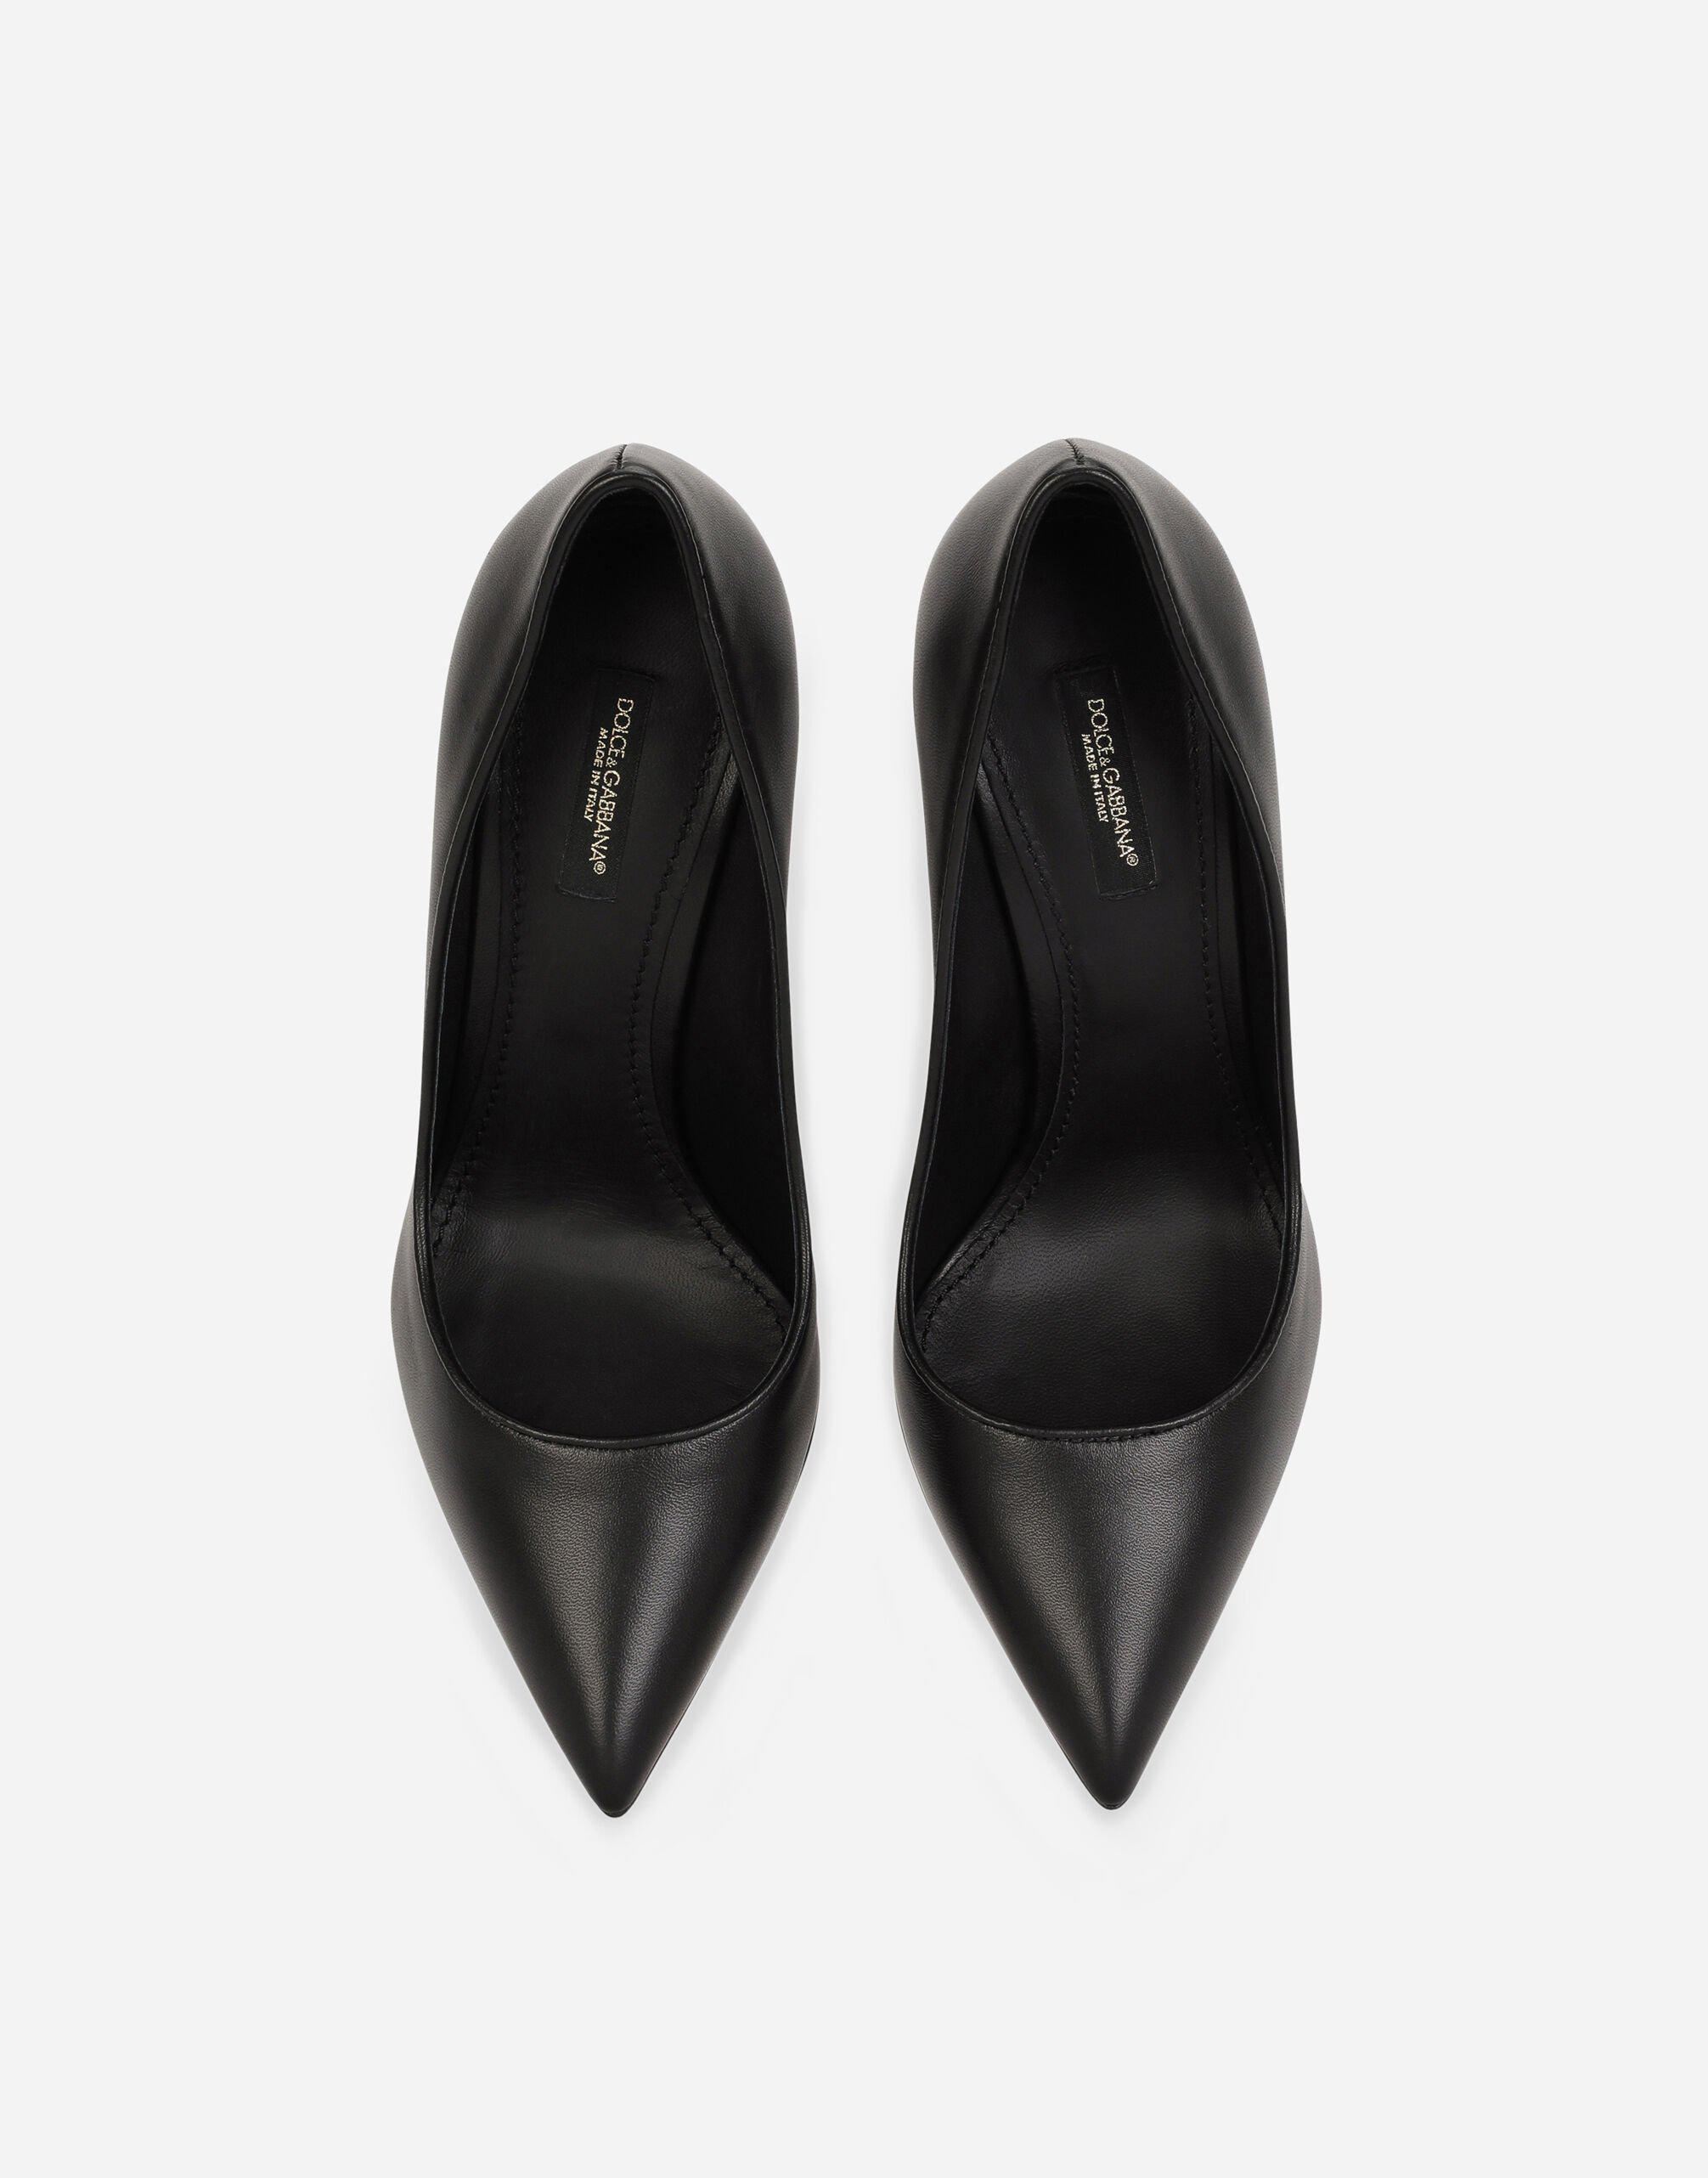 Nappa leather pumps with DG heel 3